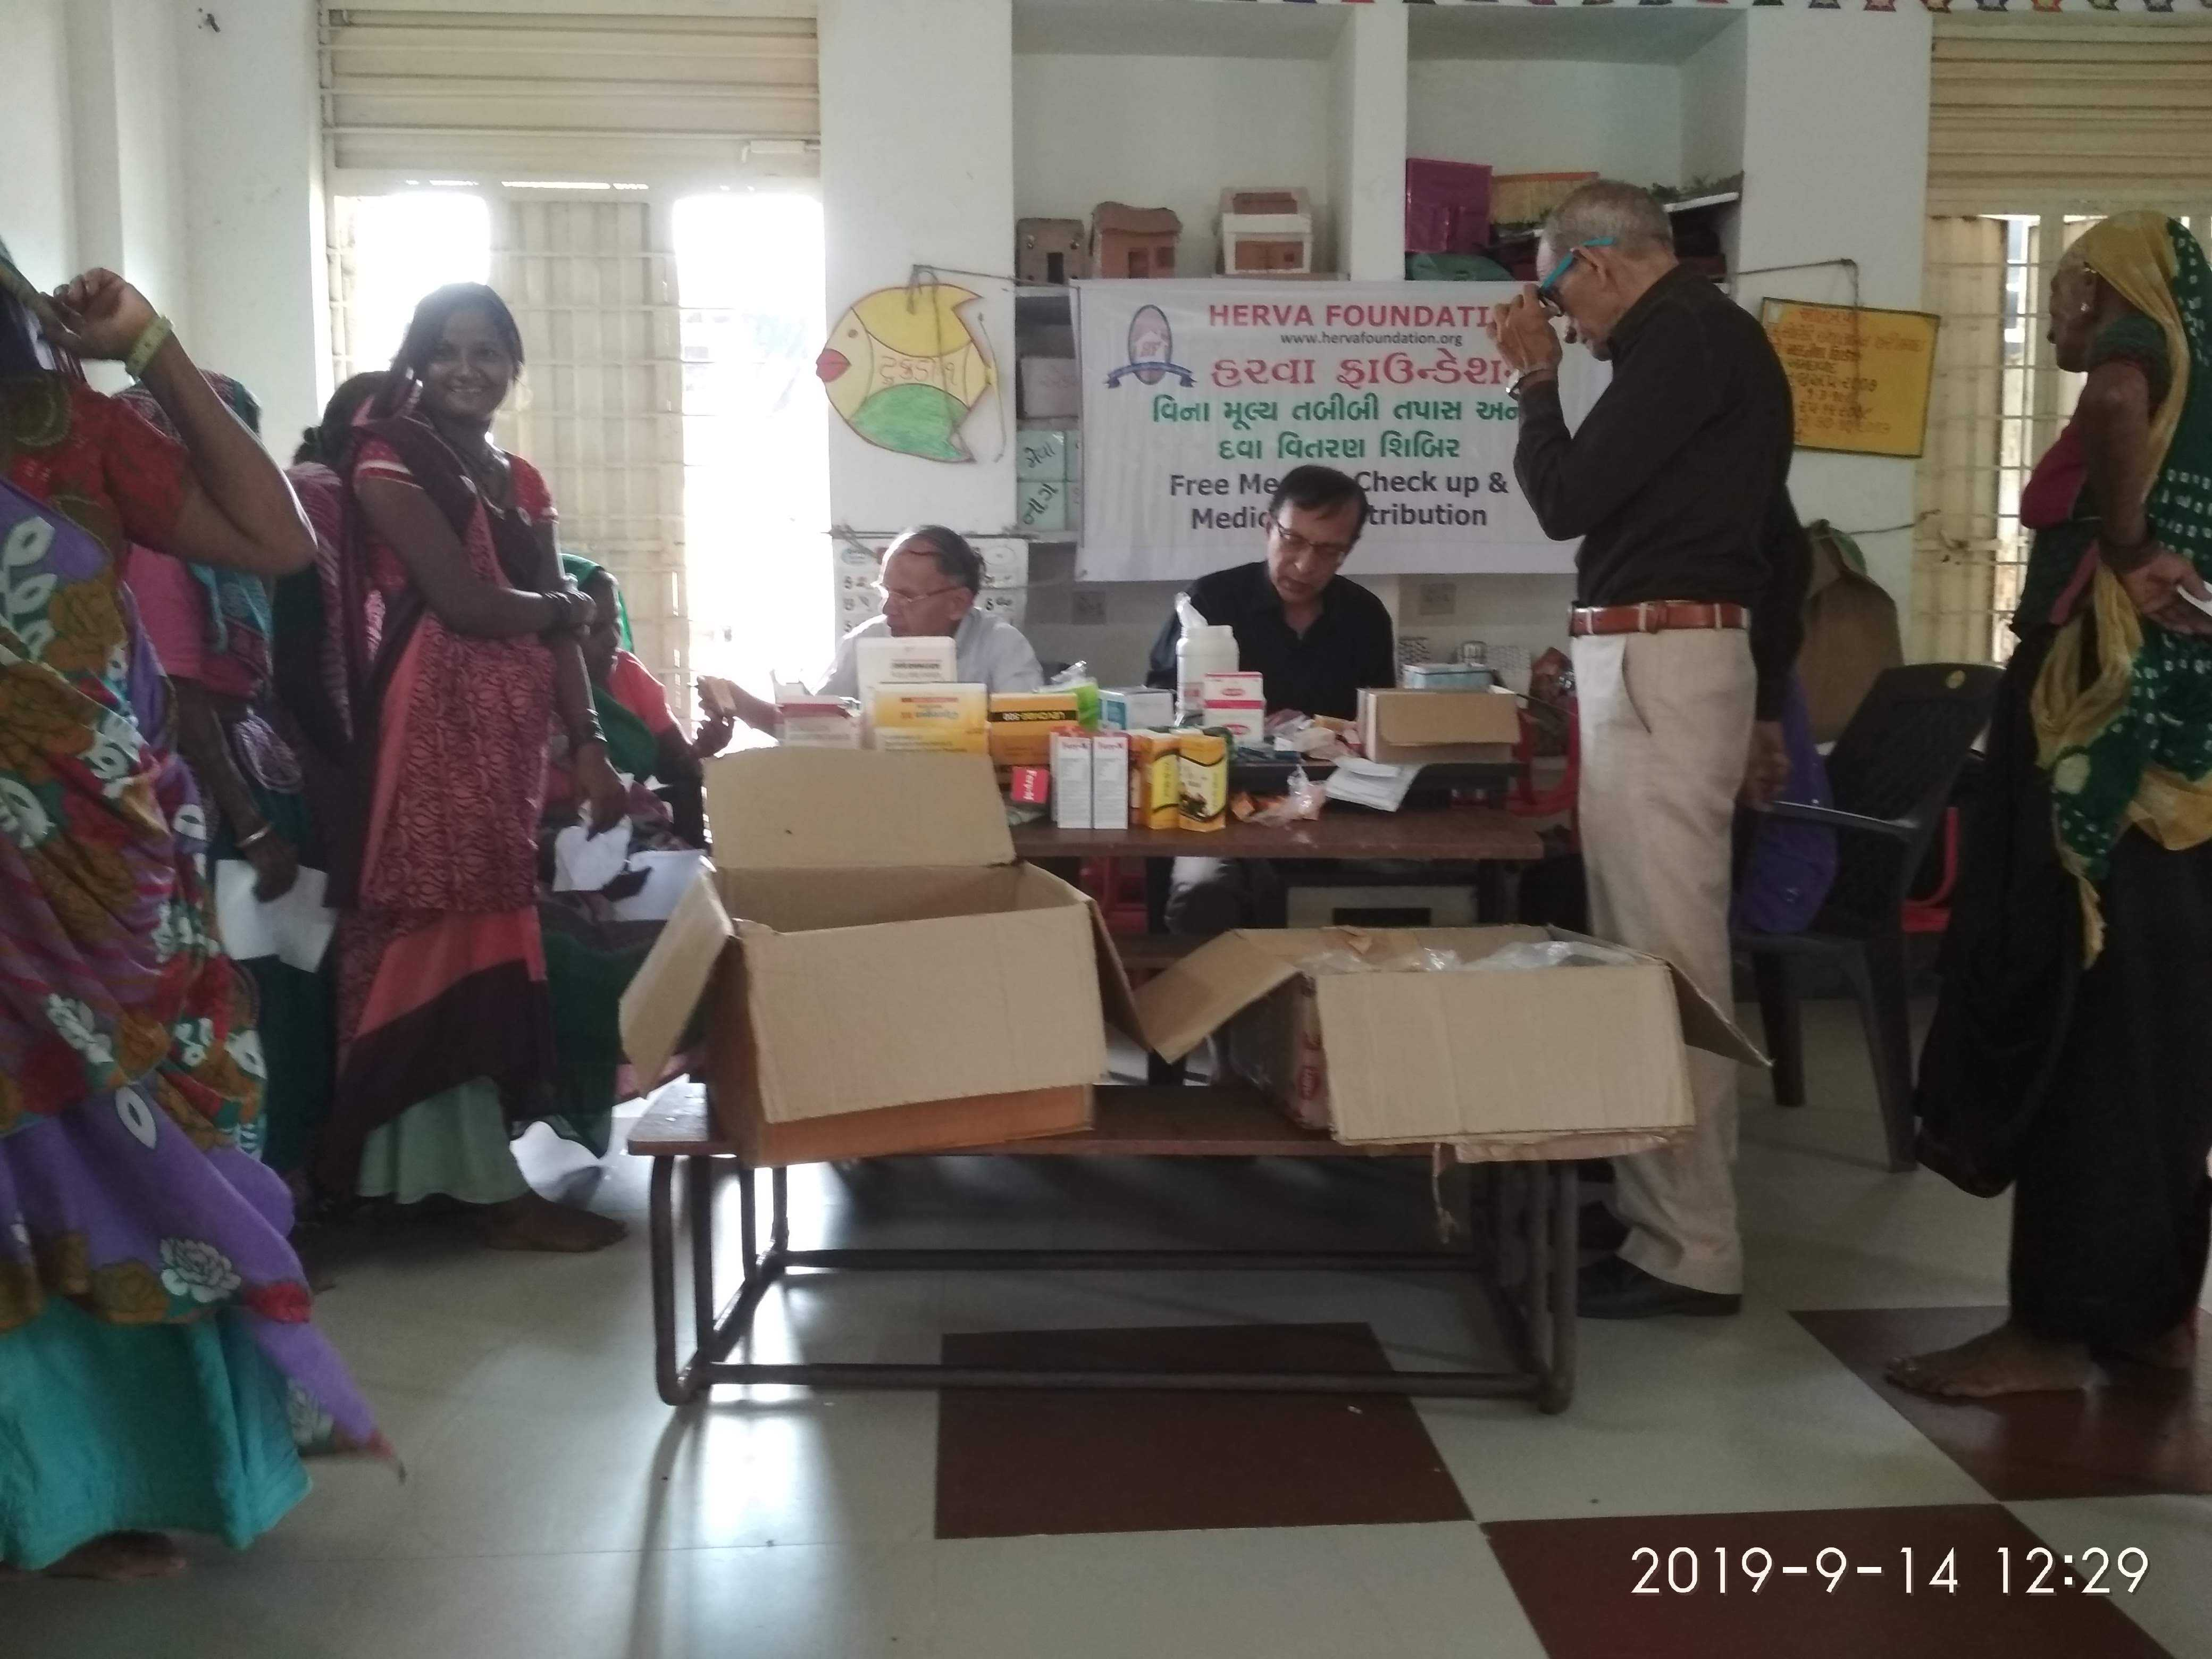 On 14th SEPT -19 we had a Diagnostic health check-up and free medicine distribution camp at village NANI KALOLI dist. Kheda, Gujarat., a backward village consists mostly of the under-privileged section of our society. Total registration 130 villagers (62 male and 68 female) out this 24 senior citizens (12 male and 12 female). Free consultation and free medicine was provided. We had the services of senior Doctors Dr Prakash Vaishnav and Dr Dilip Shah who gave us their valuable time. Sarpanch shri Mansukhabhai remain present to help us in coordination. Women and elderly citizens mainly tool advantage our medical care at door step. The village women and the village elders seldom leave their village even to visit the doctor unless it is unavoidable. 🙏